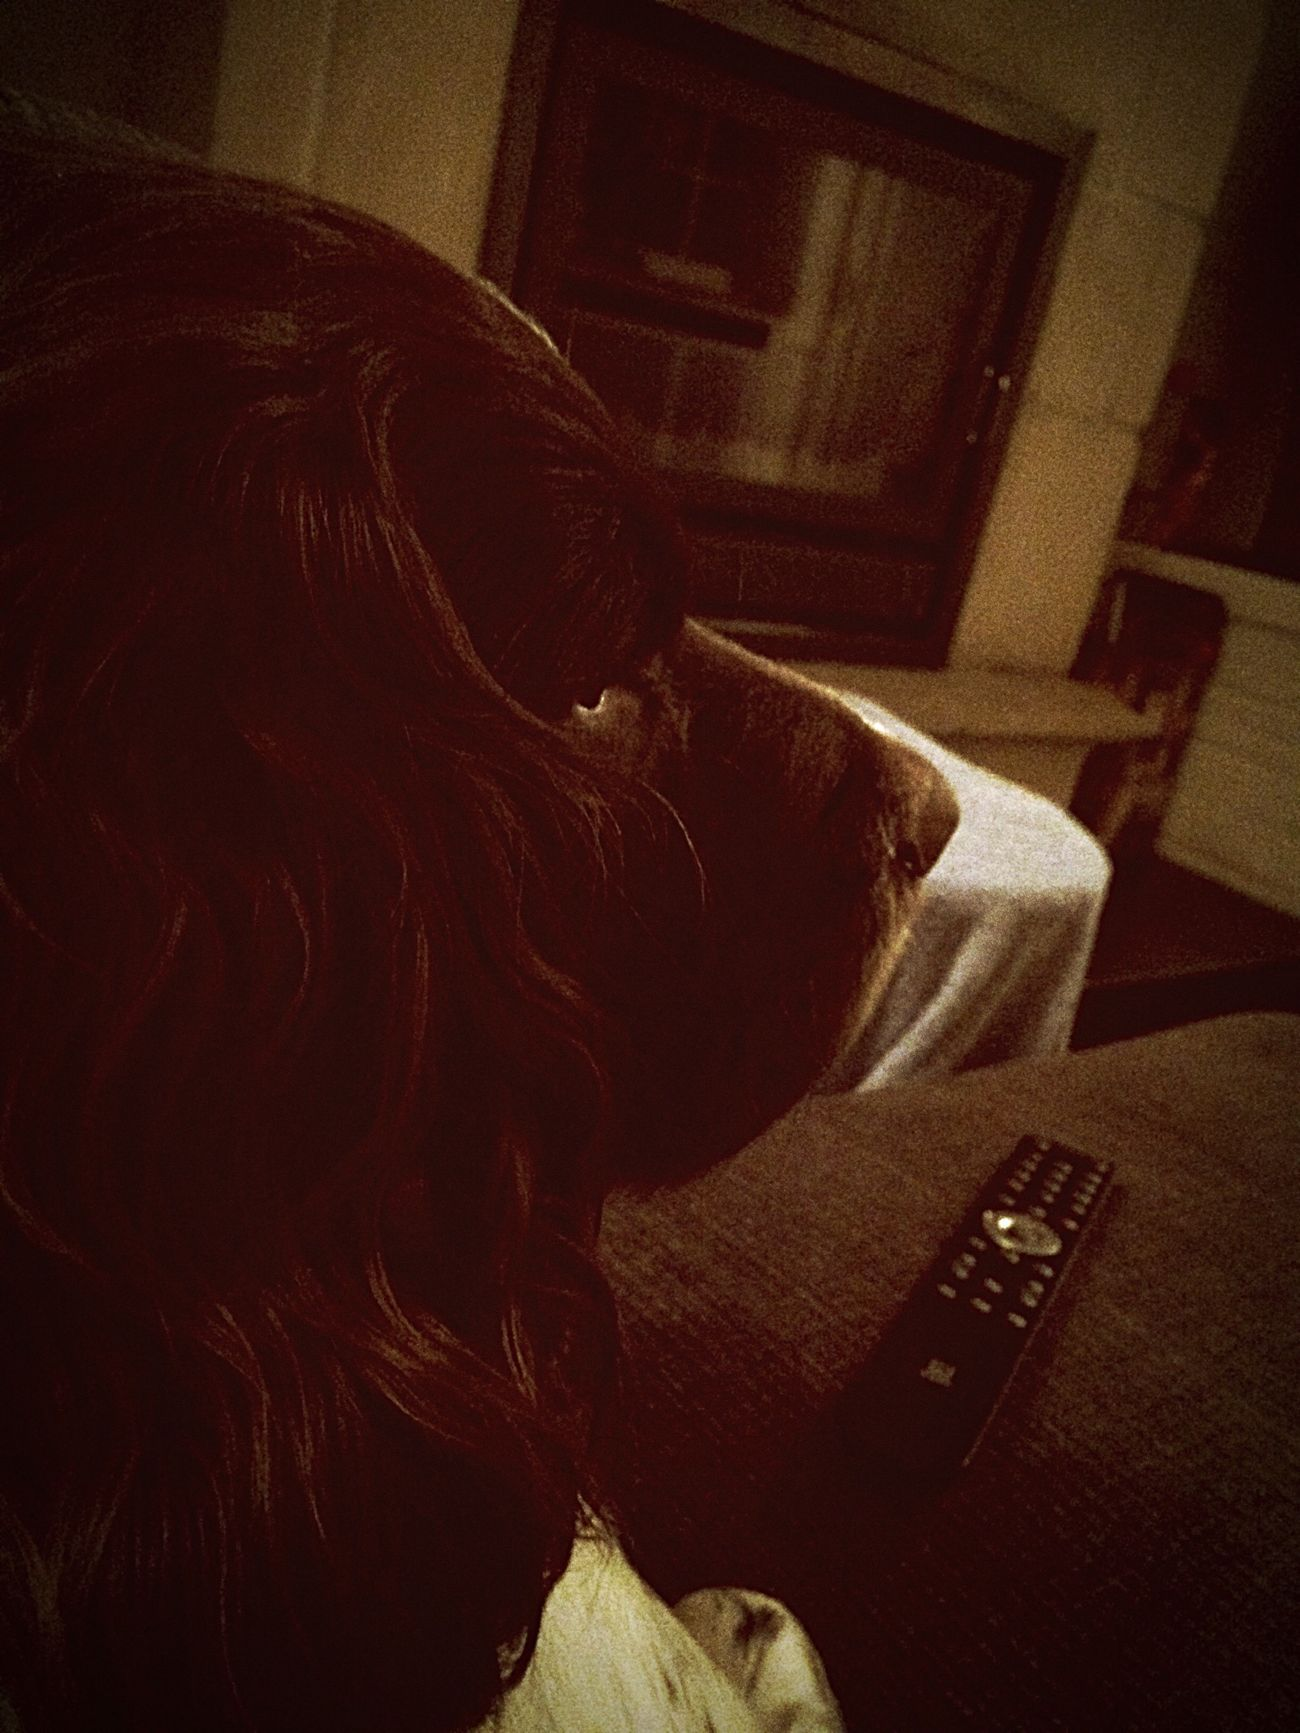 Hondje kamiel is Tv aant kijken, grrr First Eyeem Photo